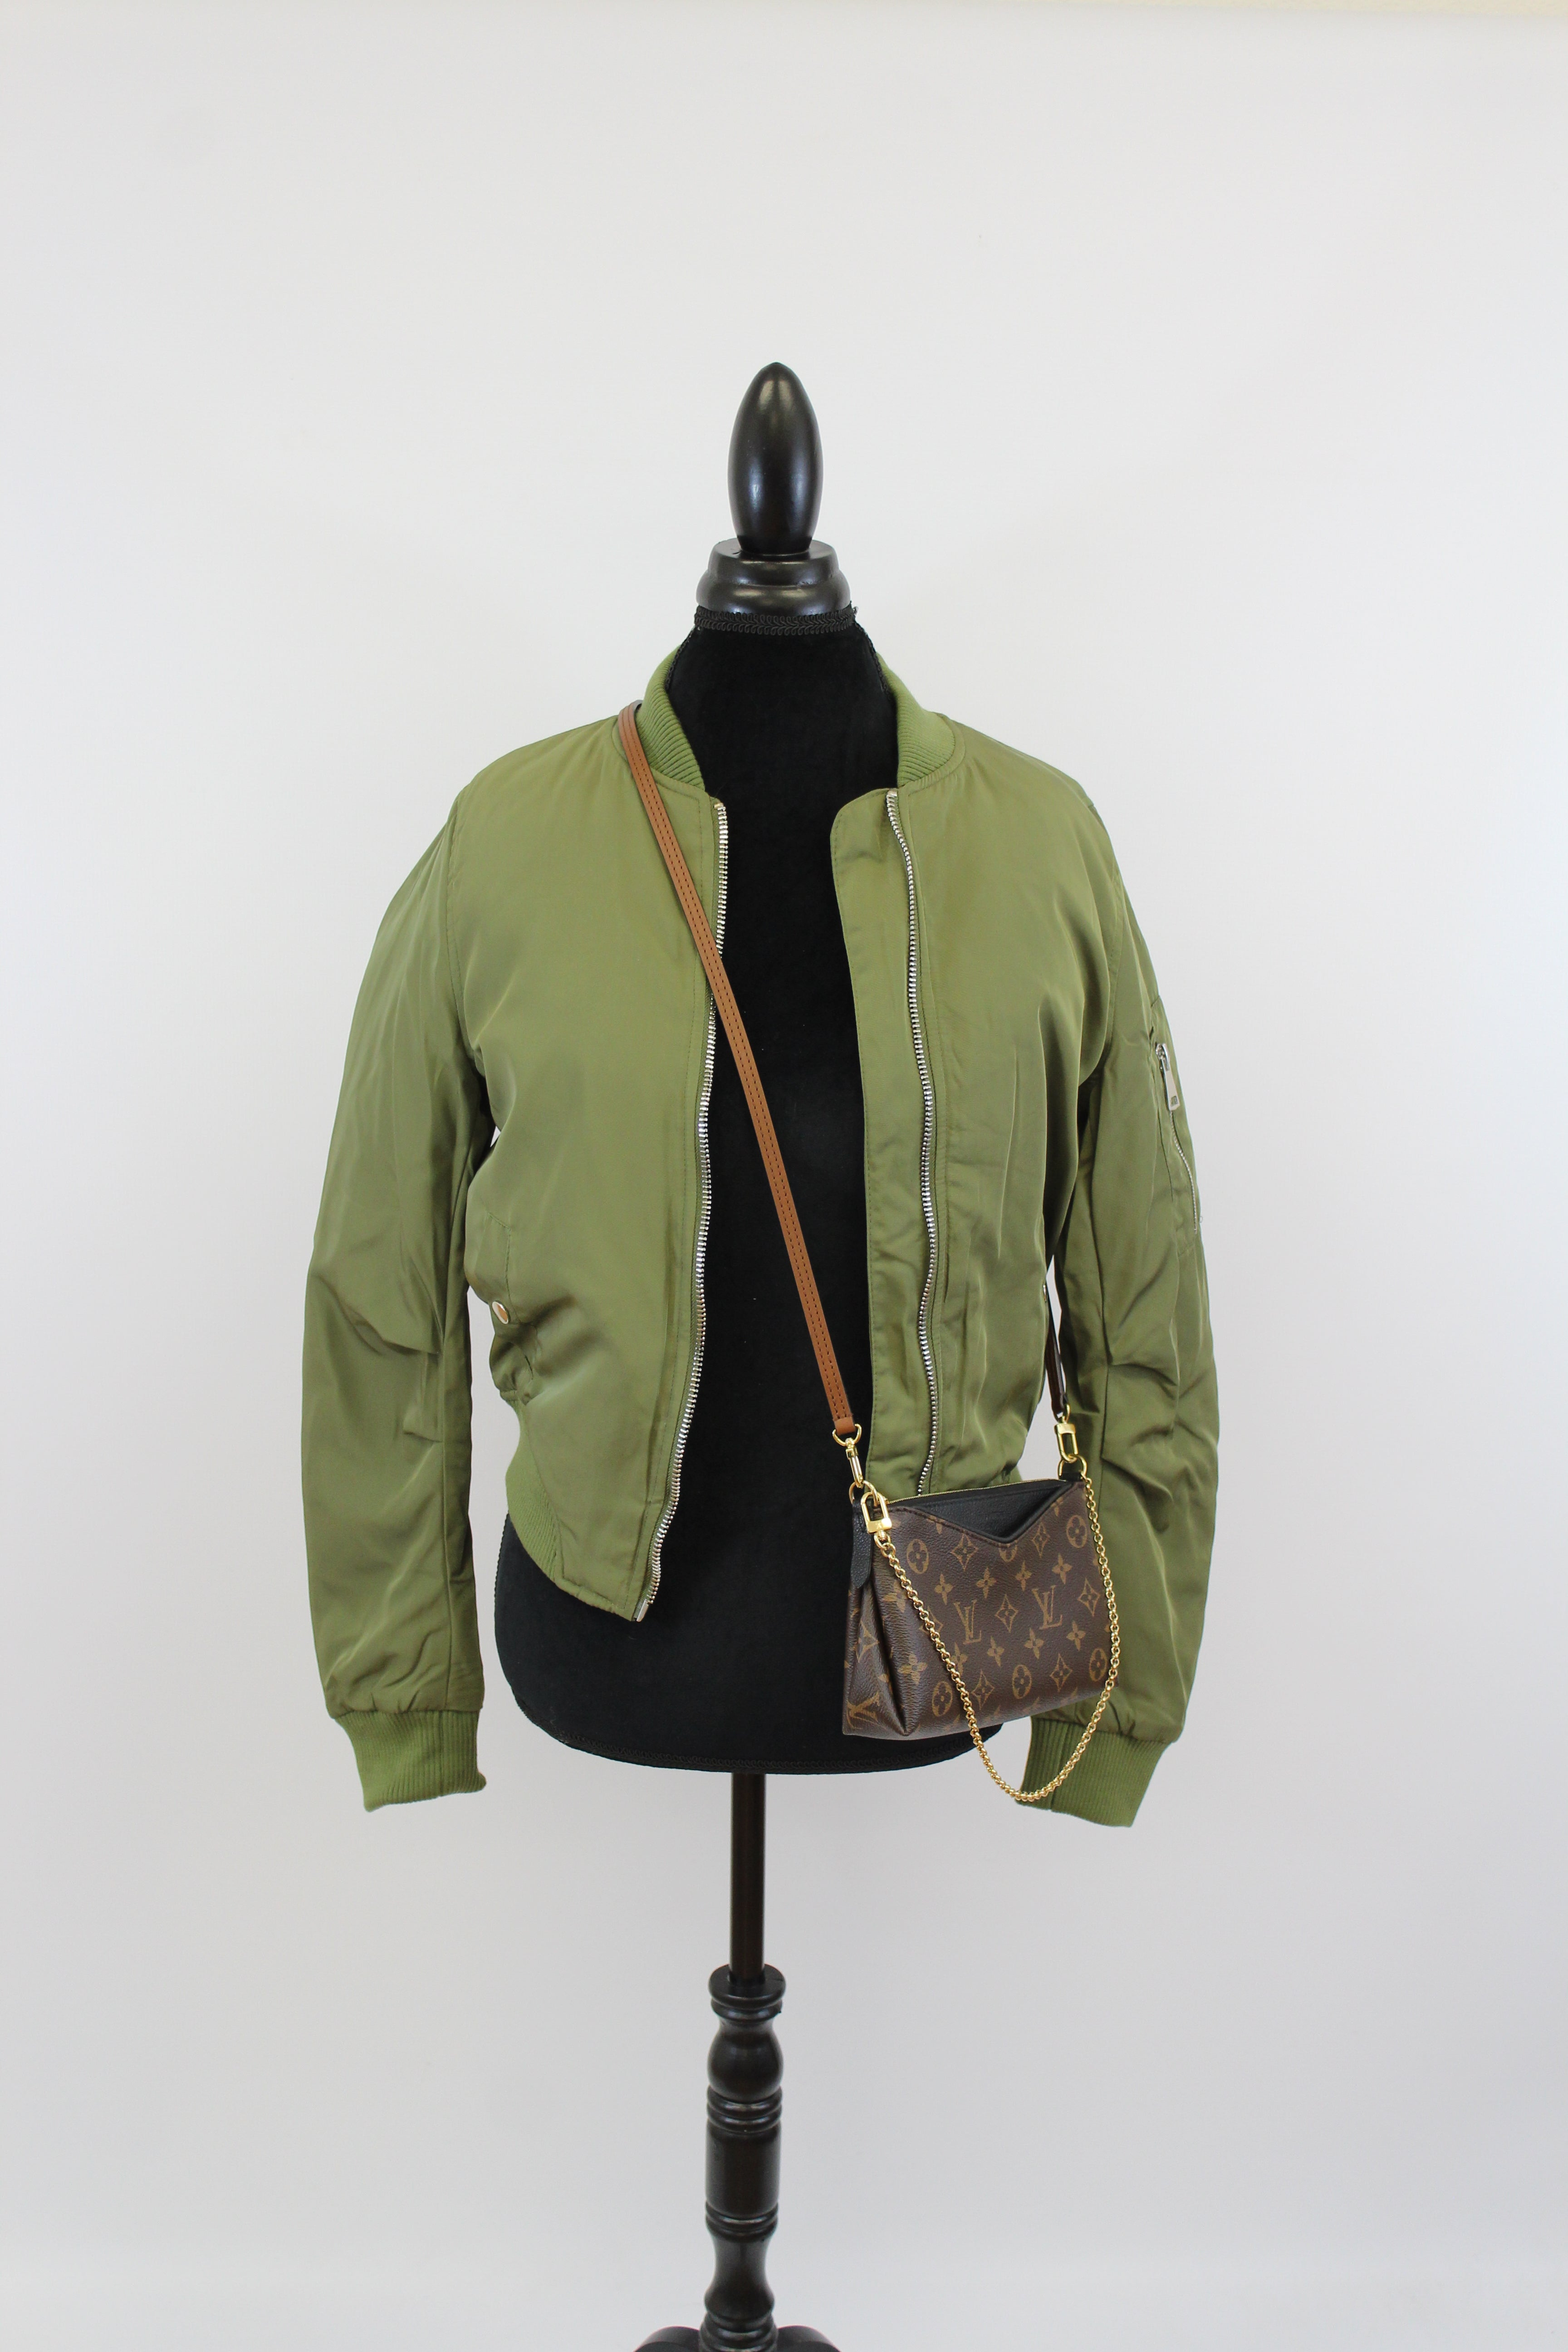 bomber jacket green black zip mid light weight pockets zippers women revolve levi overland nordstrom macys kohls amazon street style